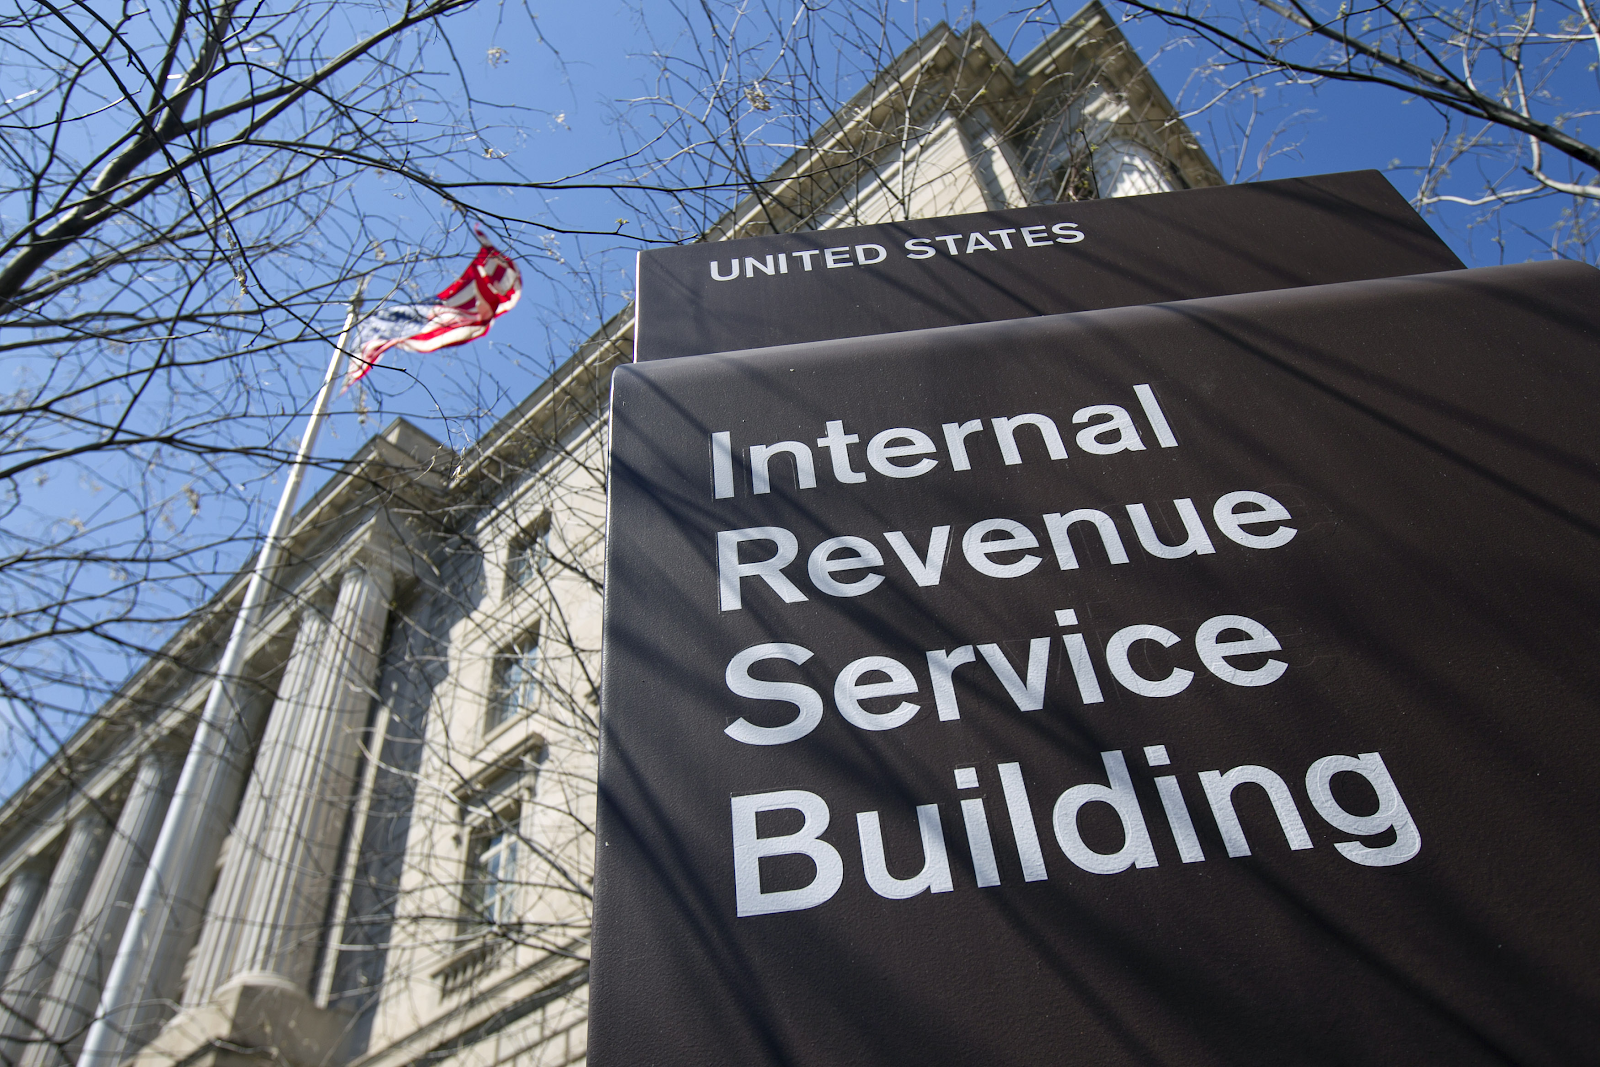 The Internal Revenue Service Building Source (Photo:  Fortune )